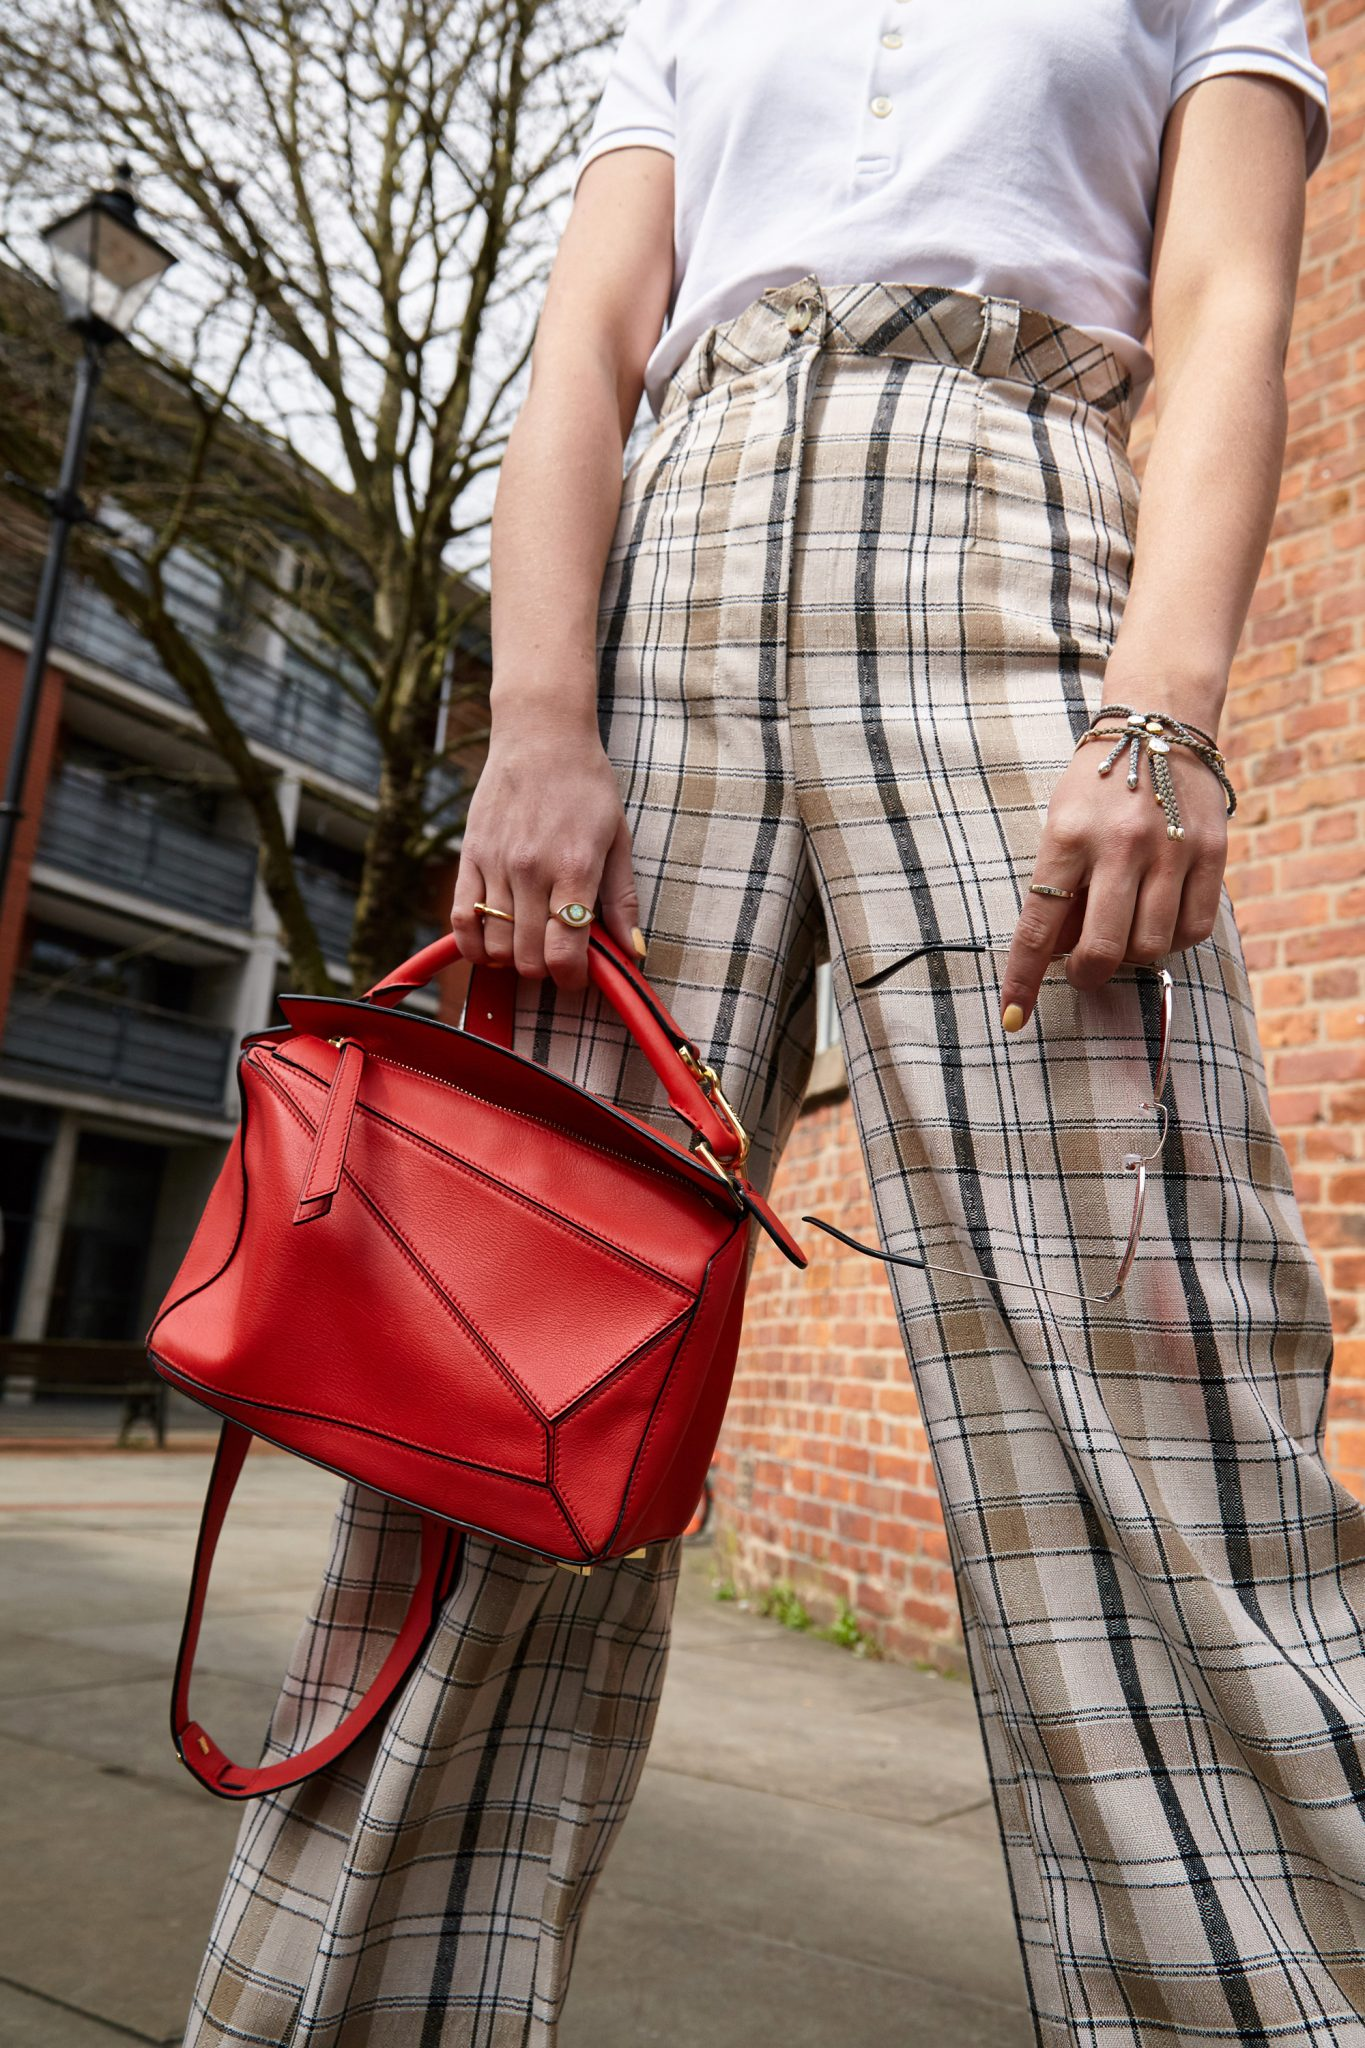 HOW TO WEAR THE LOEWE PUZZLE BAG